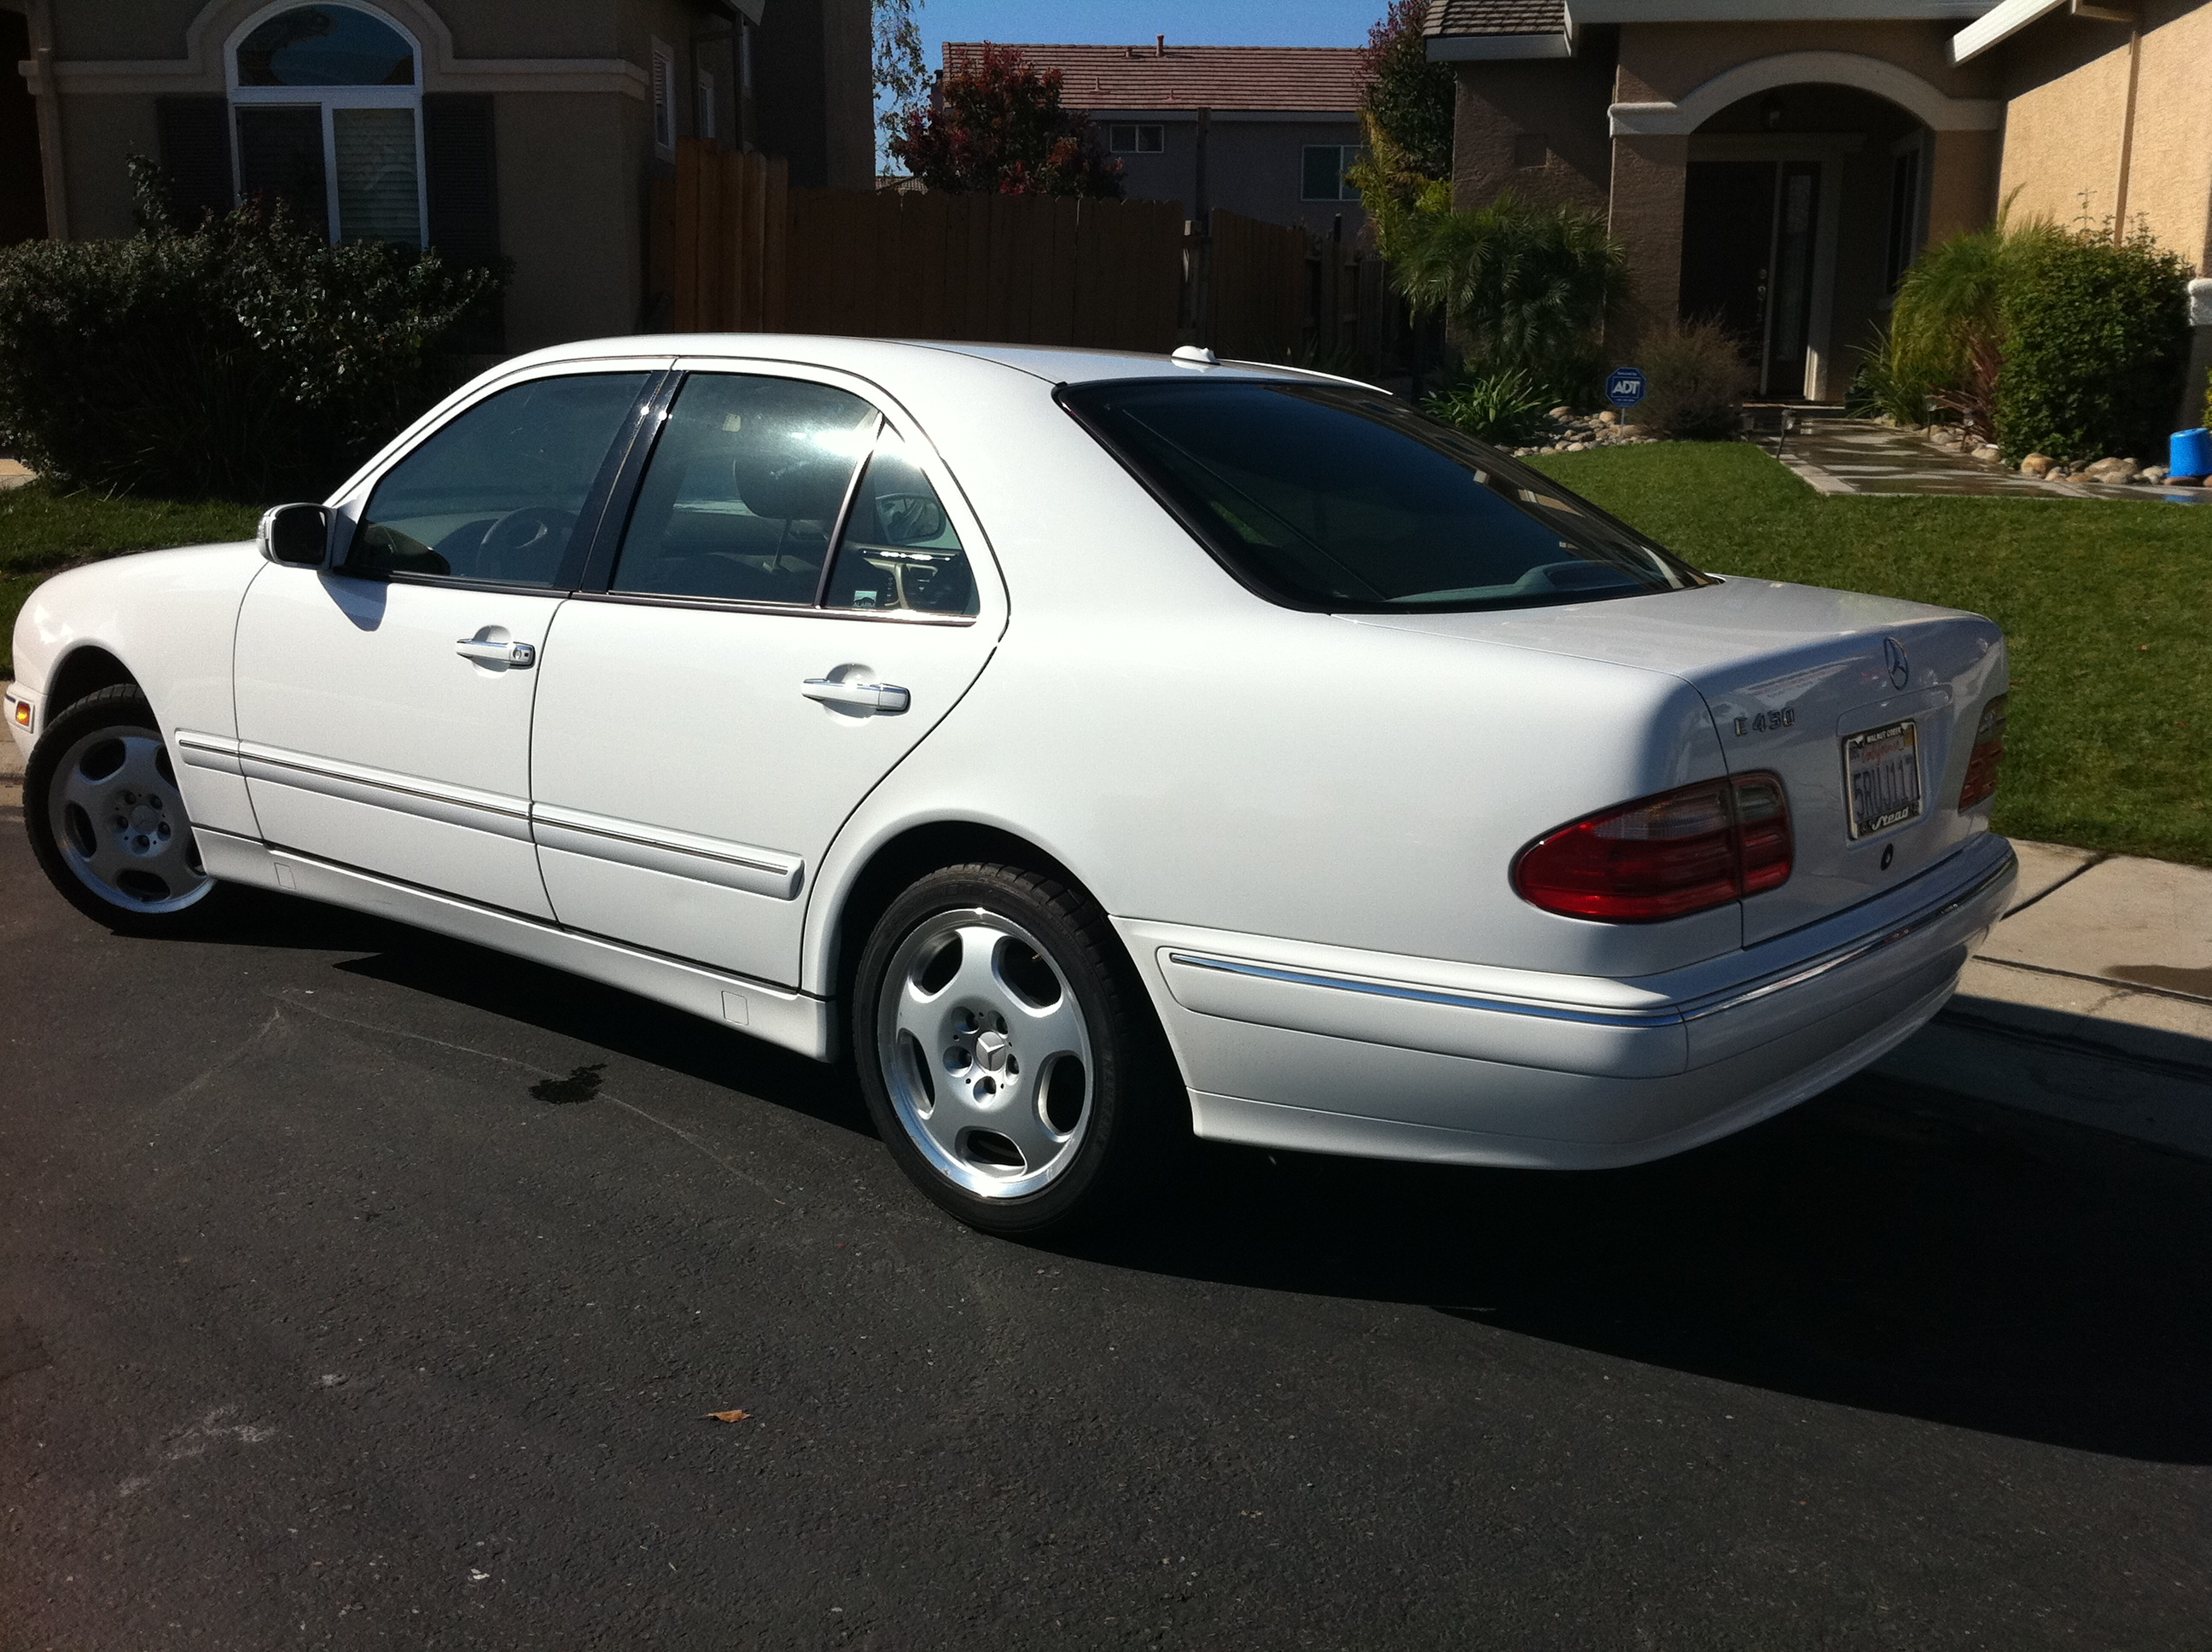 Photos of mercedes benz e 430 photo galleries on flipacars for Mercedes benz elk grove